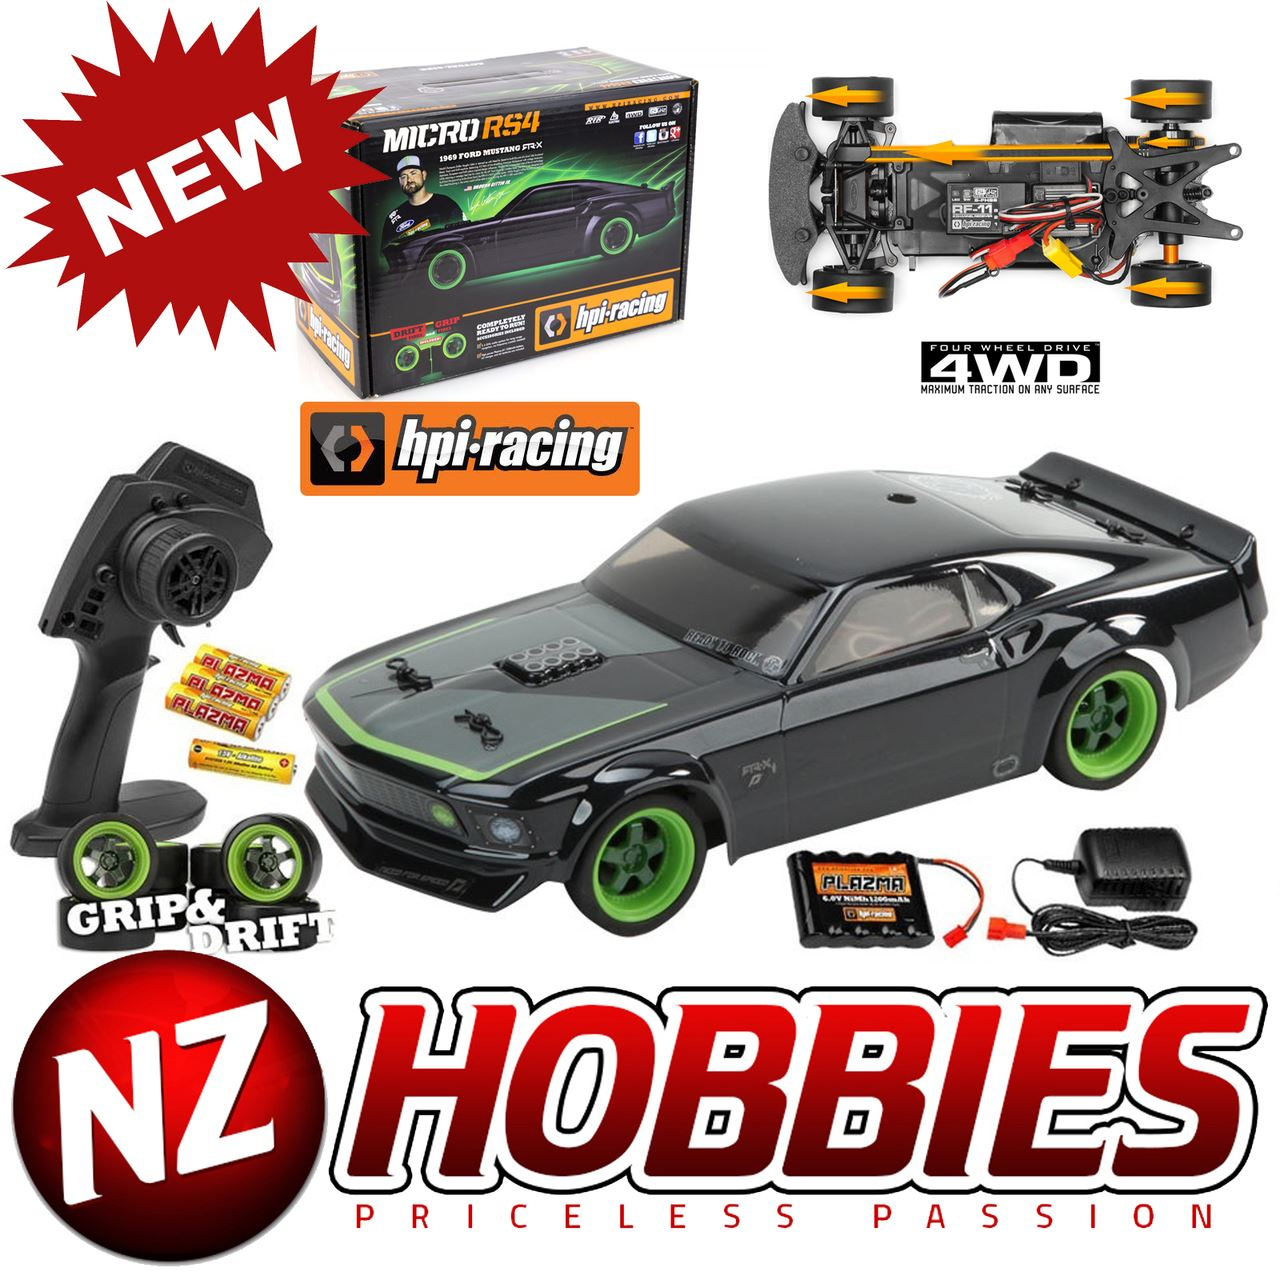 Details about hpi 112468 micro rs4 69 ford mustang rtr x 1 18 scale w 2 4ghz radio